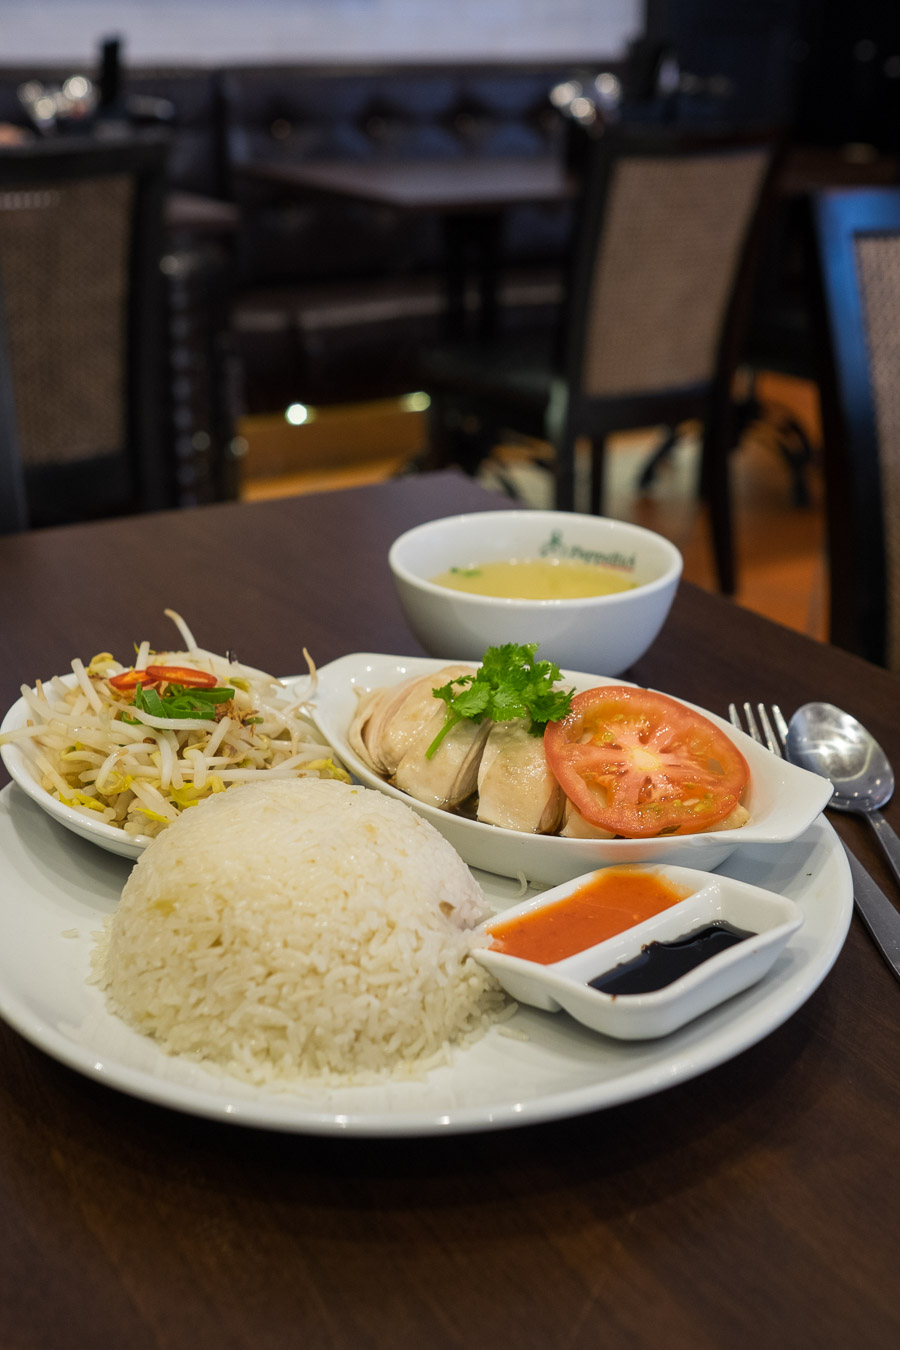 Pappa Chicken Rice (AU$13.90, R01)